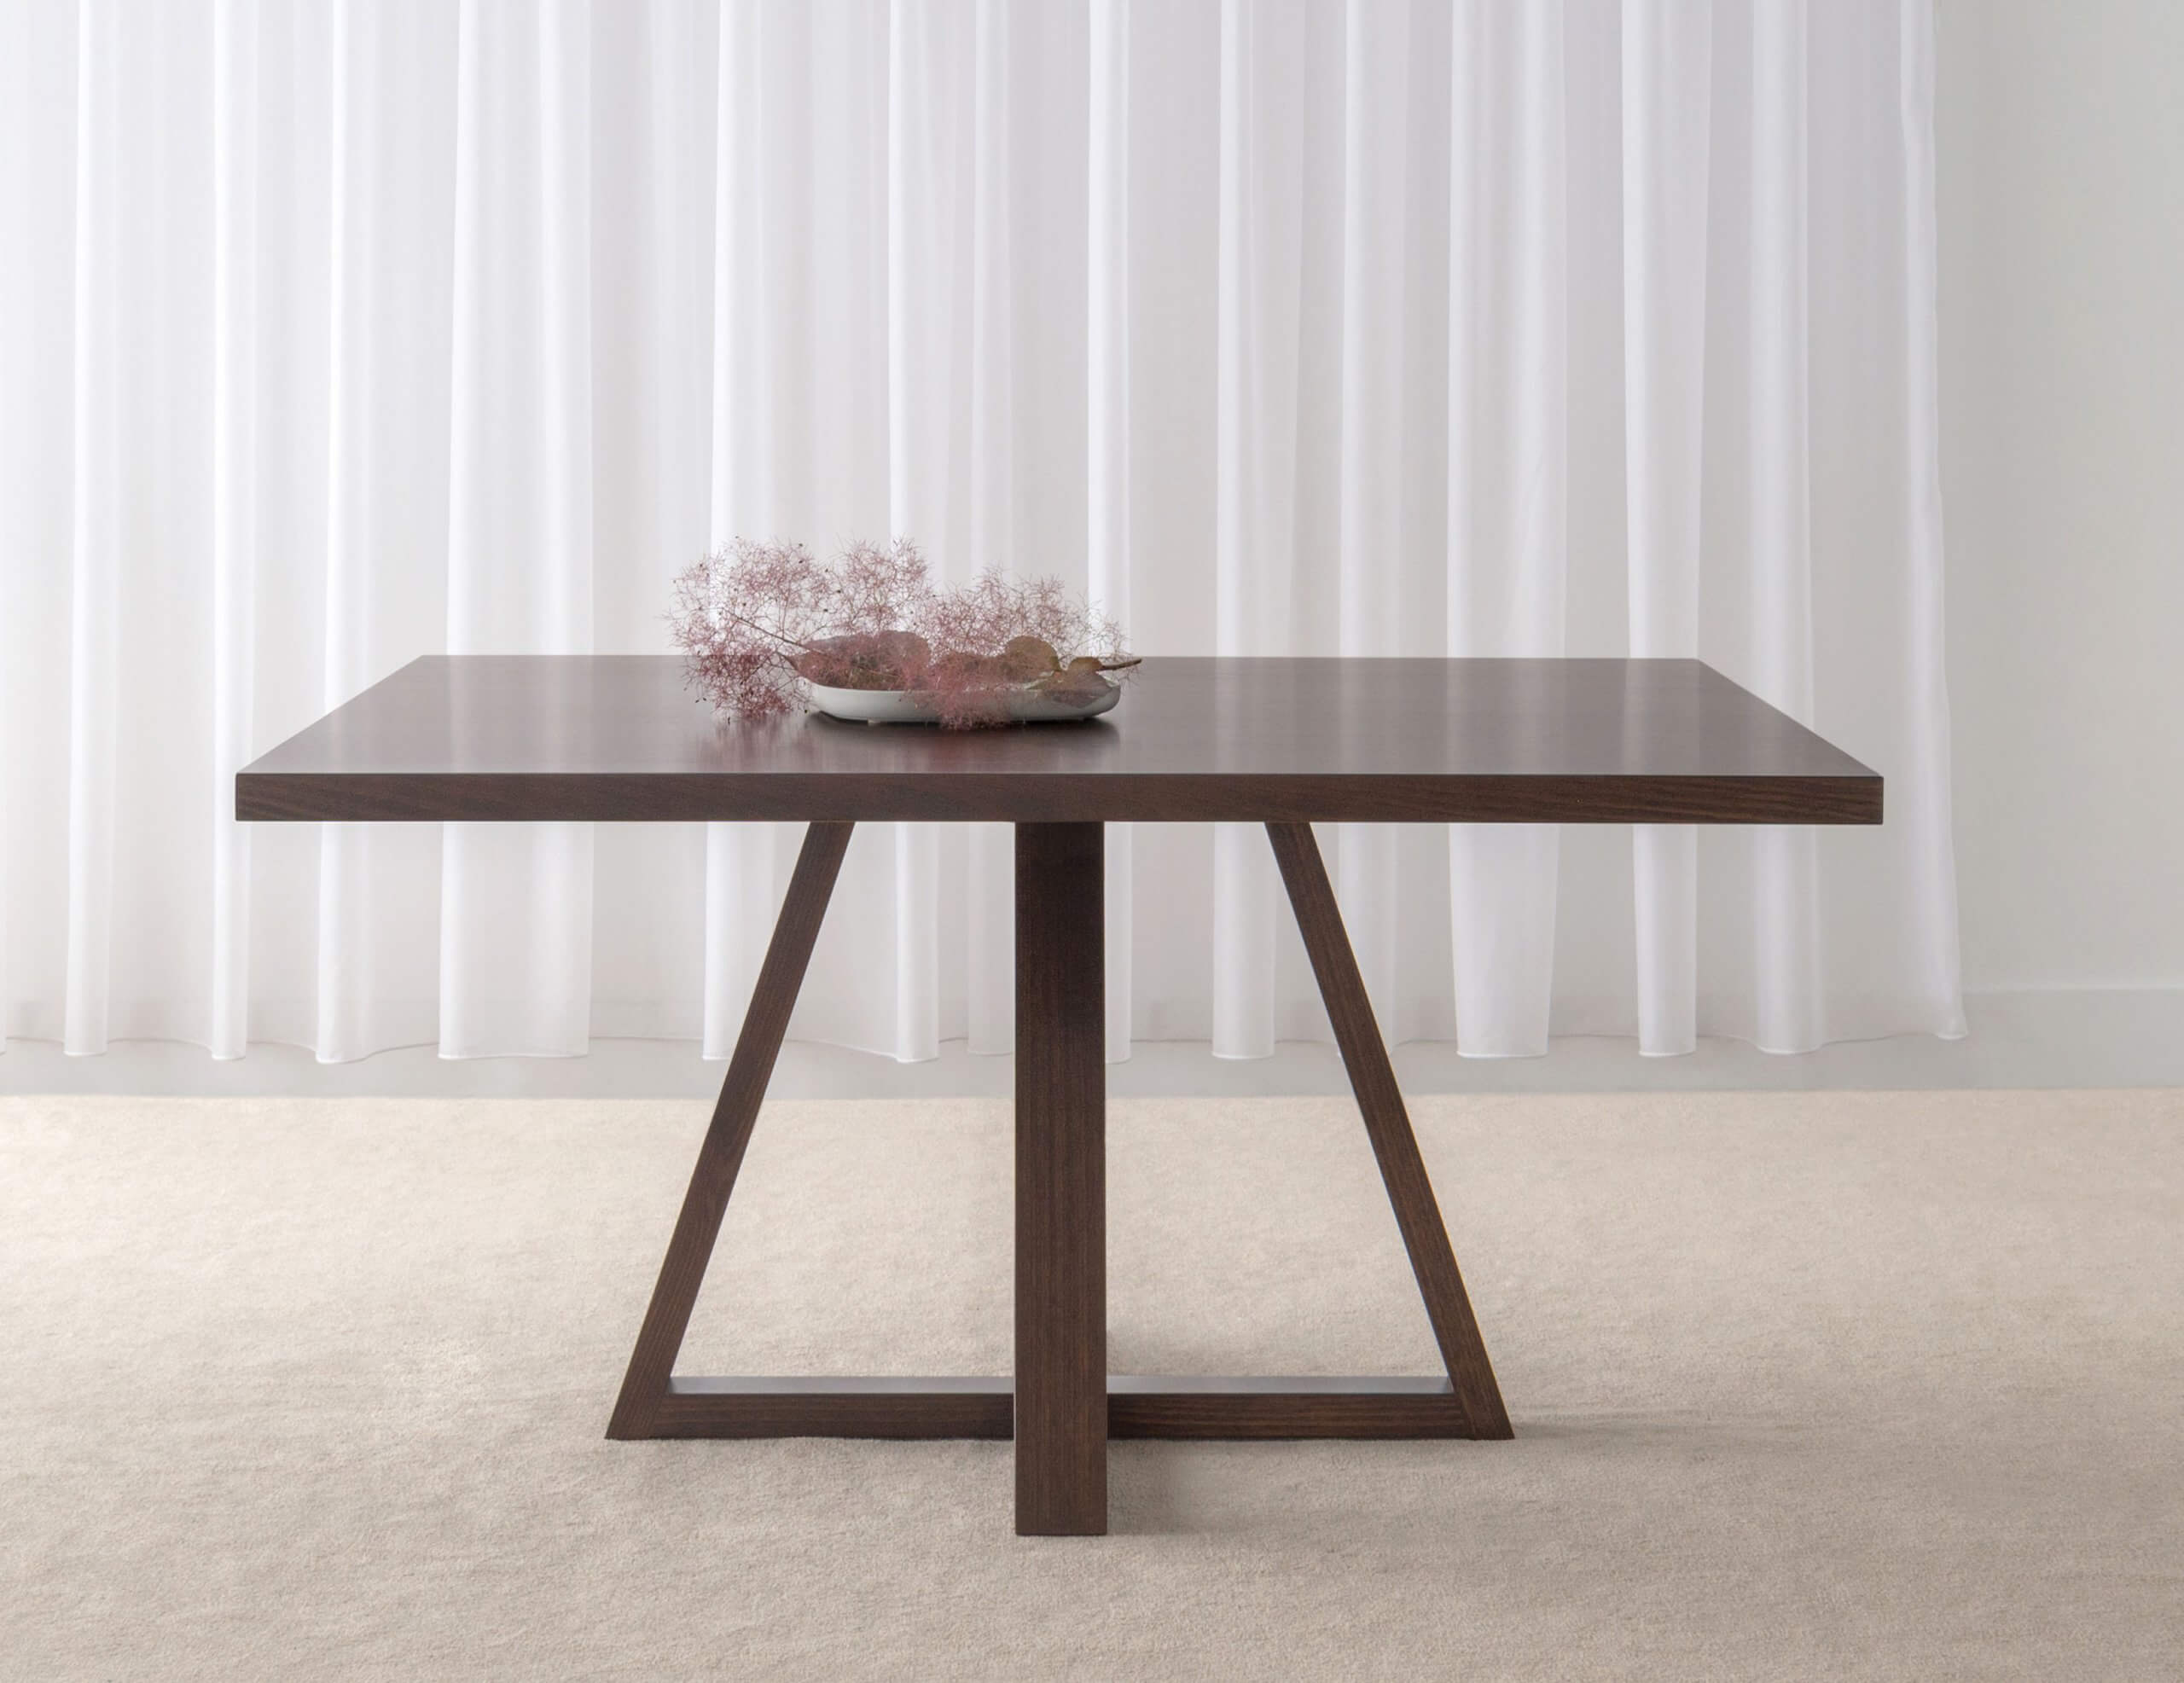 square dining table made in Adelaide